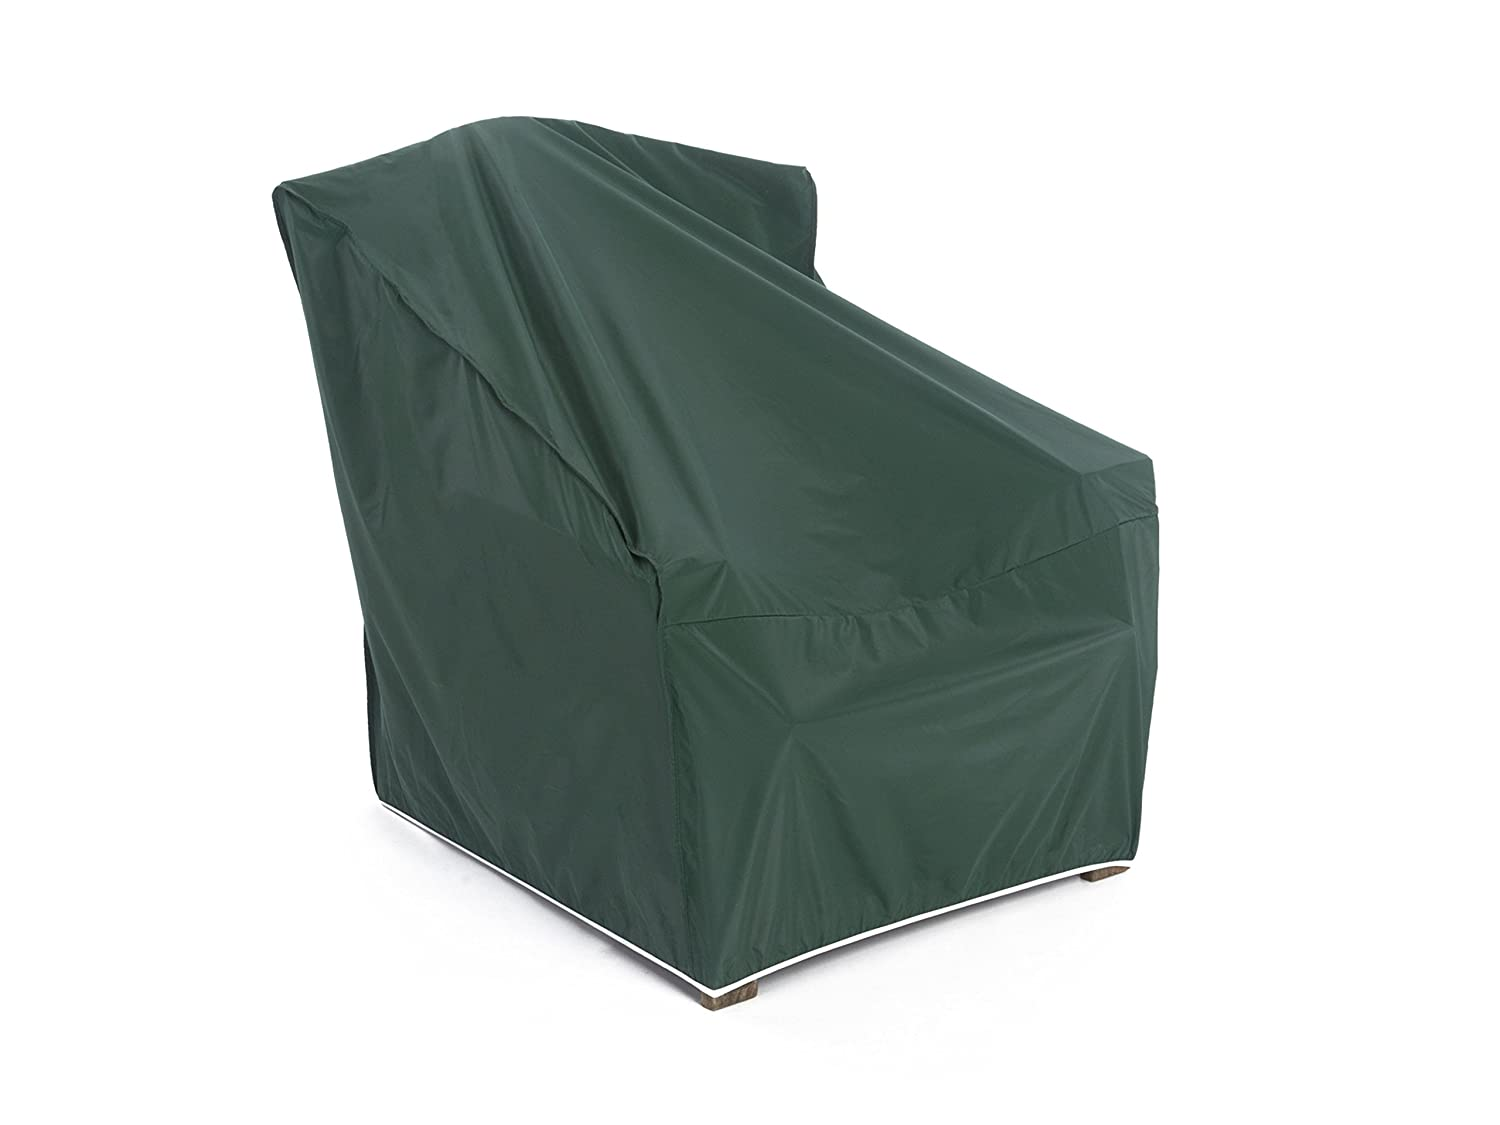 covermates patio furniture covers. Amazon.com : CoverMates - Outdoor Chair Cover 30W X 38D 36H Classic Collection 2 YR Warranty Year Around Protection Green Patio Covers Covermates Furniture D